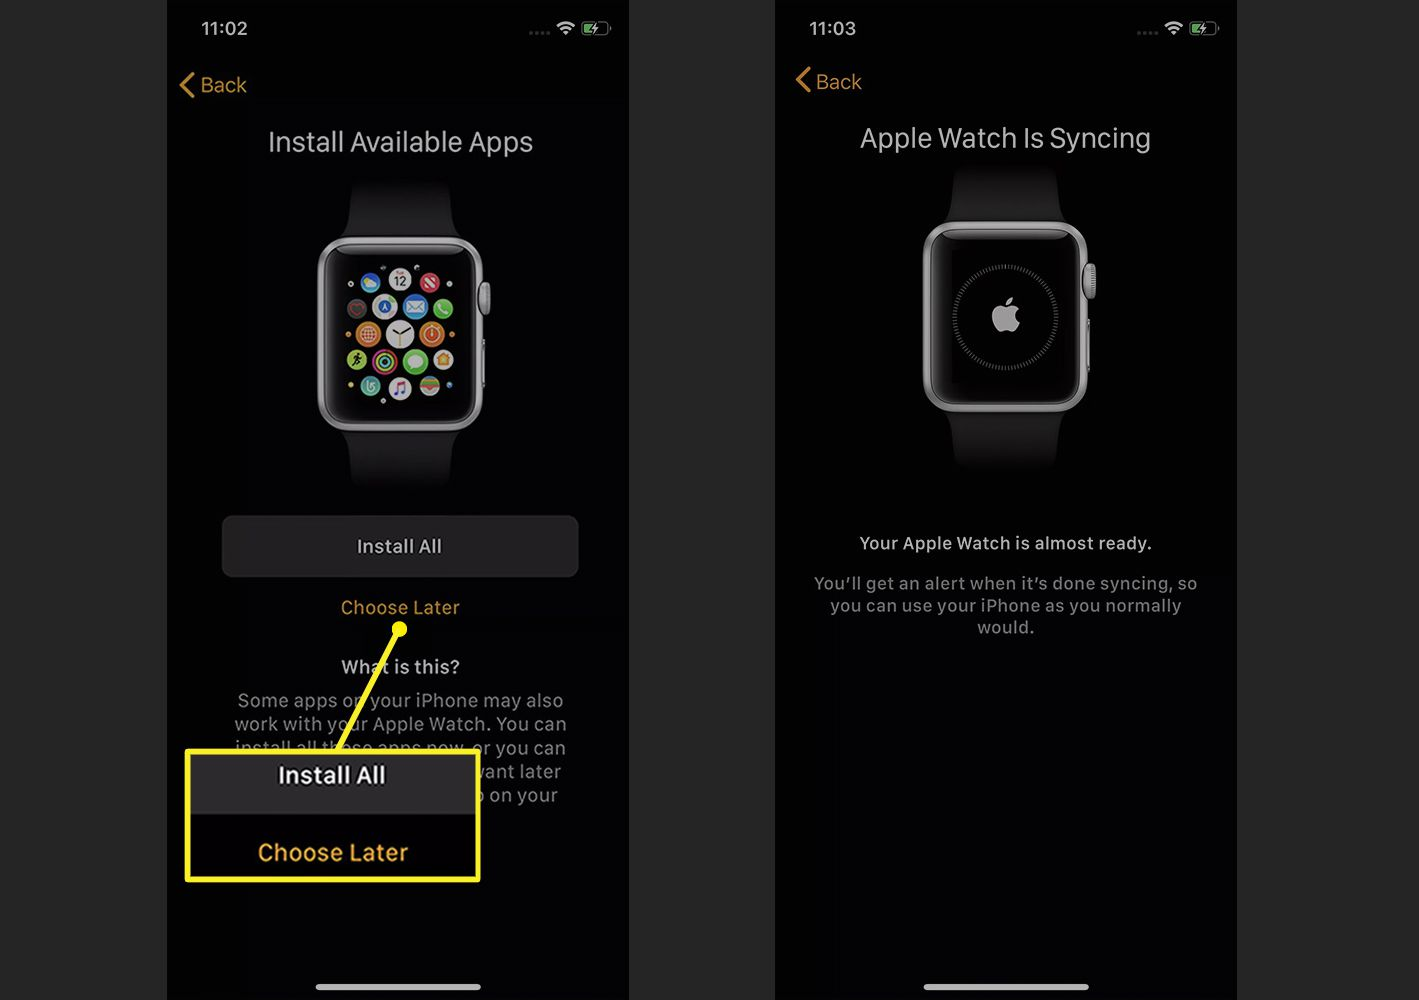 Apple Watch app showing app installation during initial setup